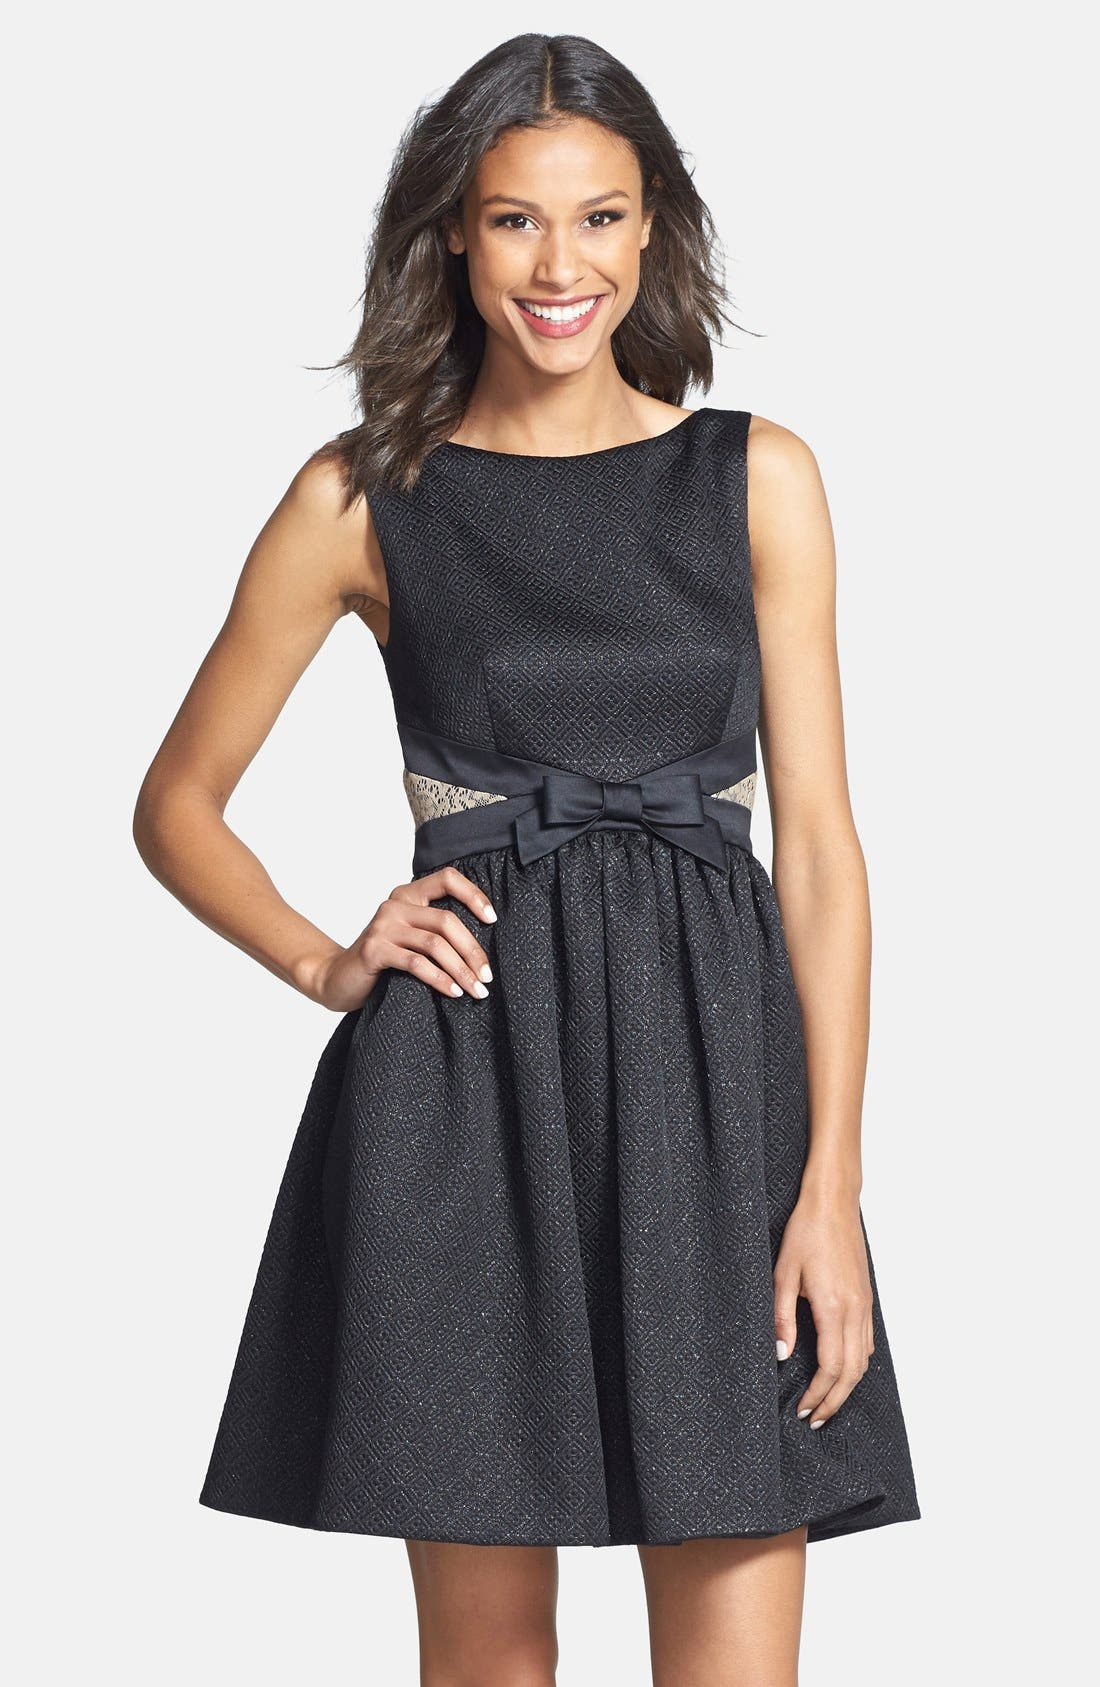 Main Image - ERIN erin fetherston Bow Detail Jacquard Fit & Flare Dress